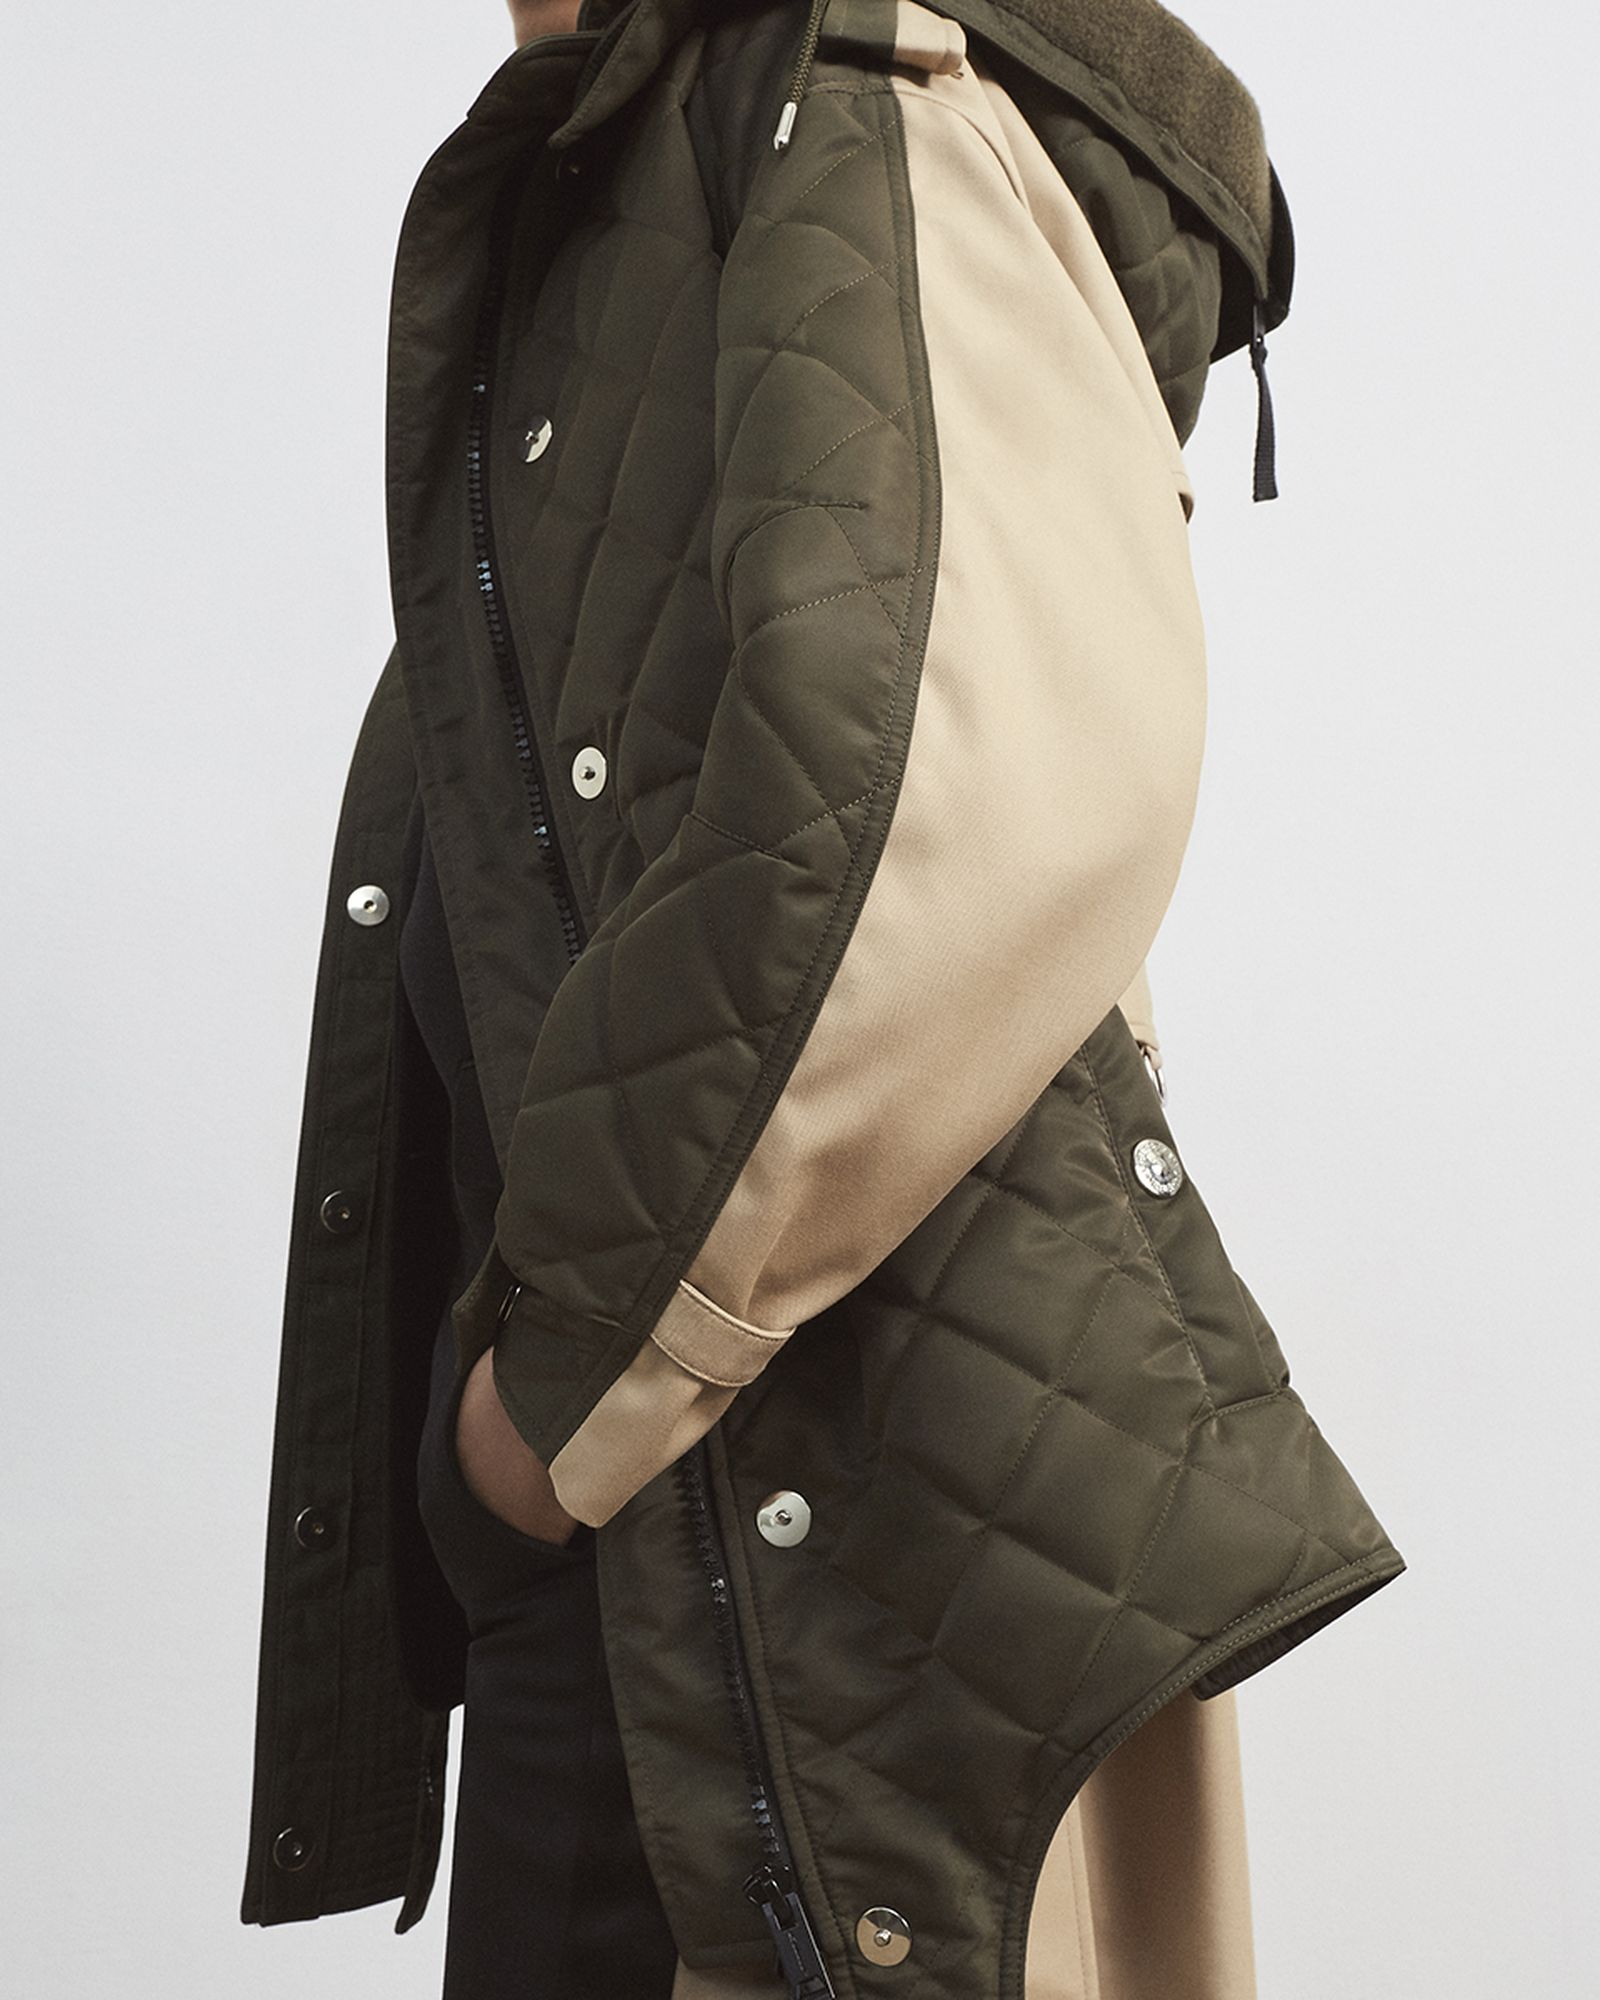 burberry-future-archive-collection-02